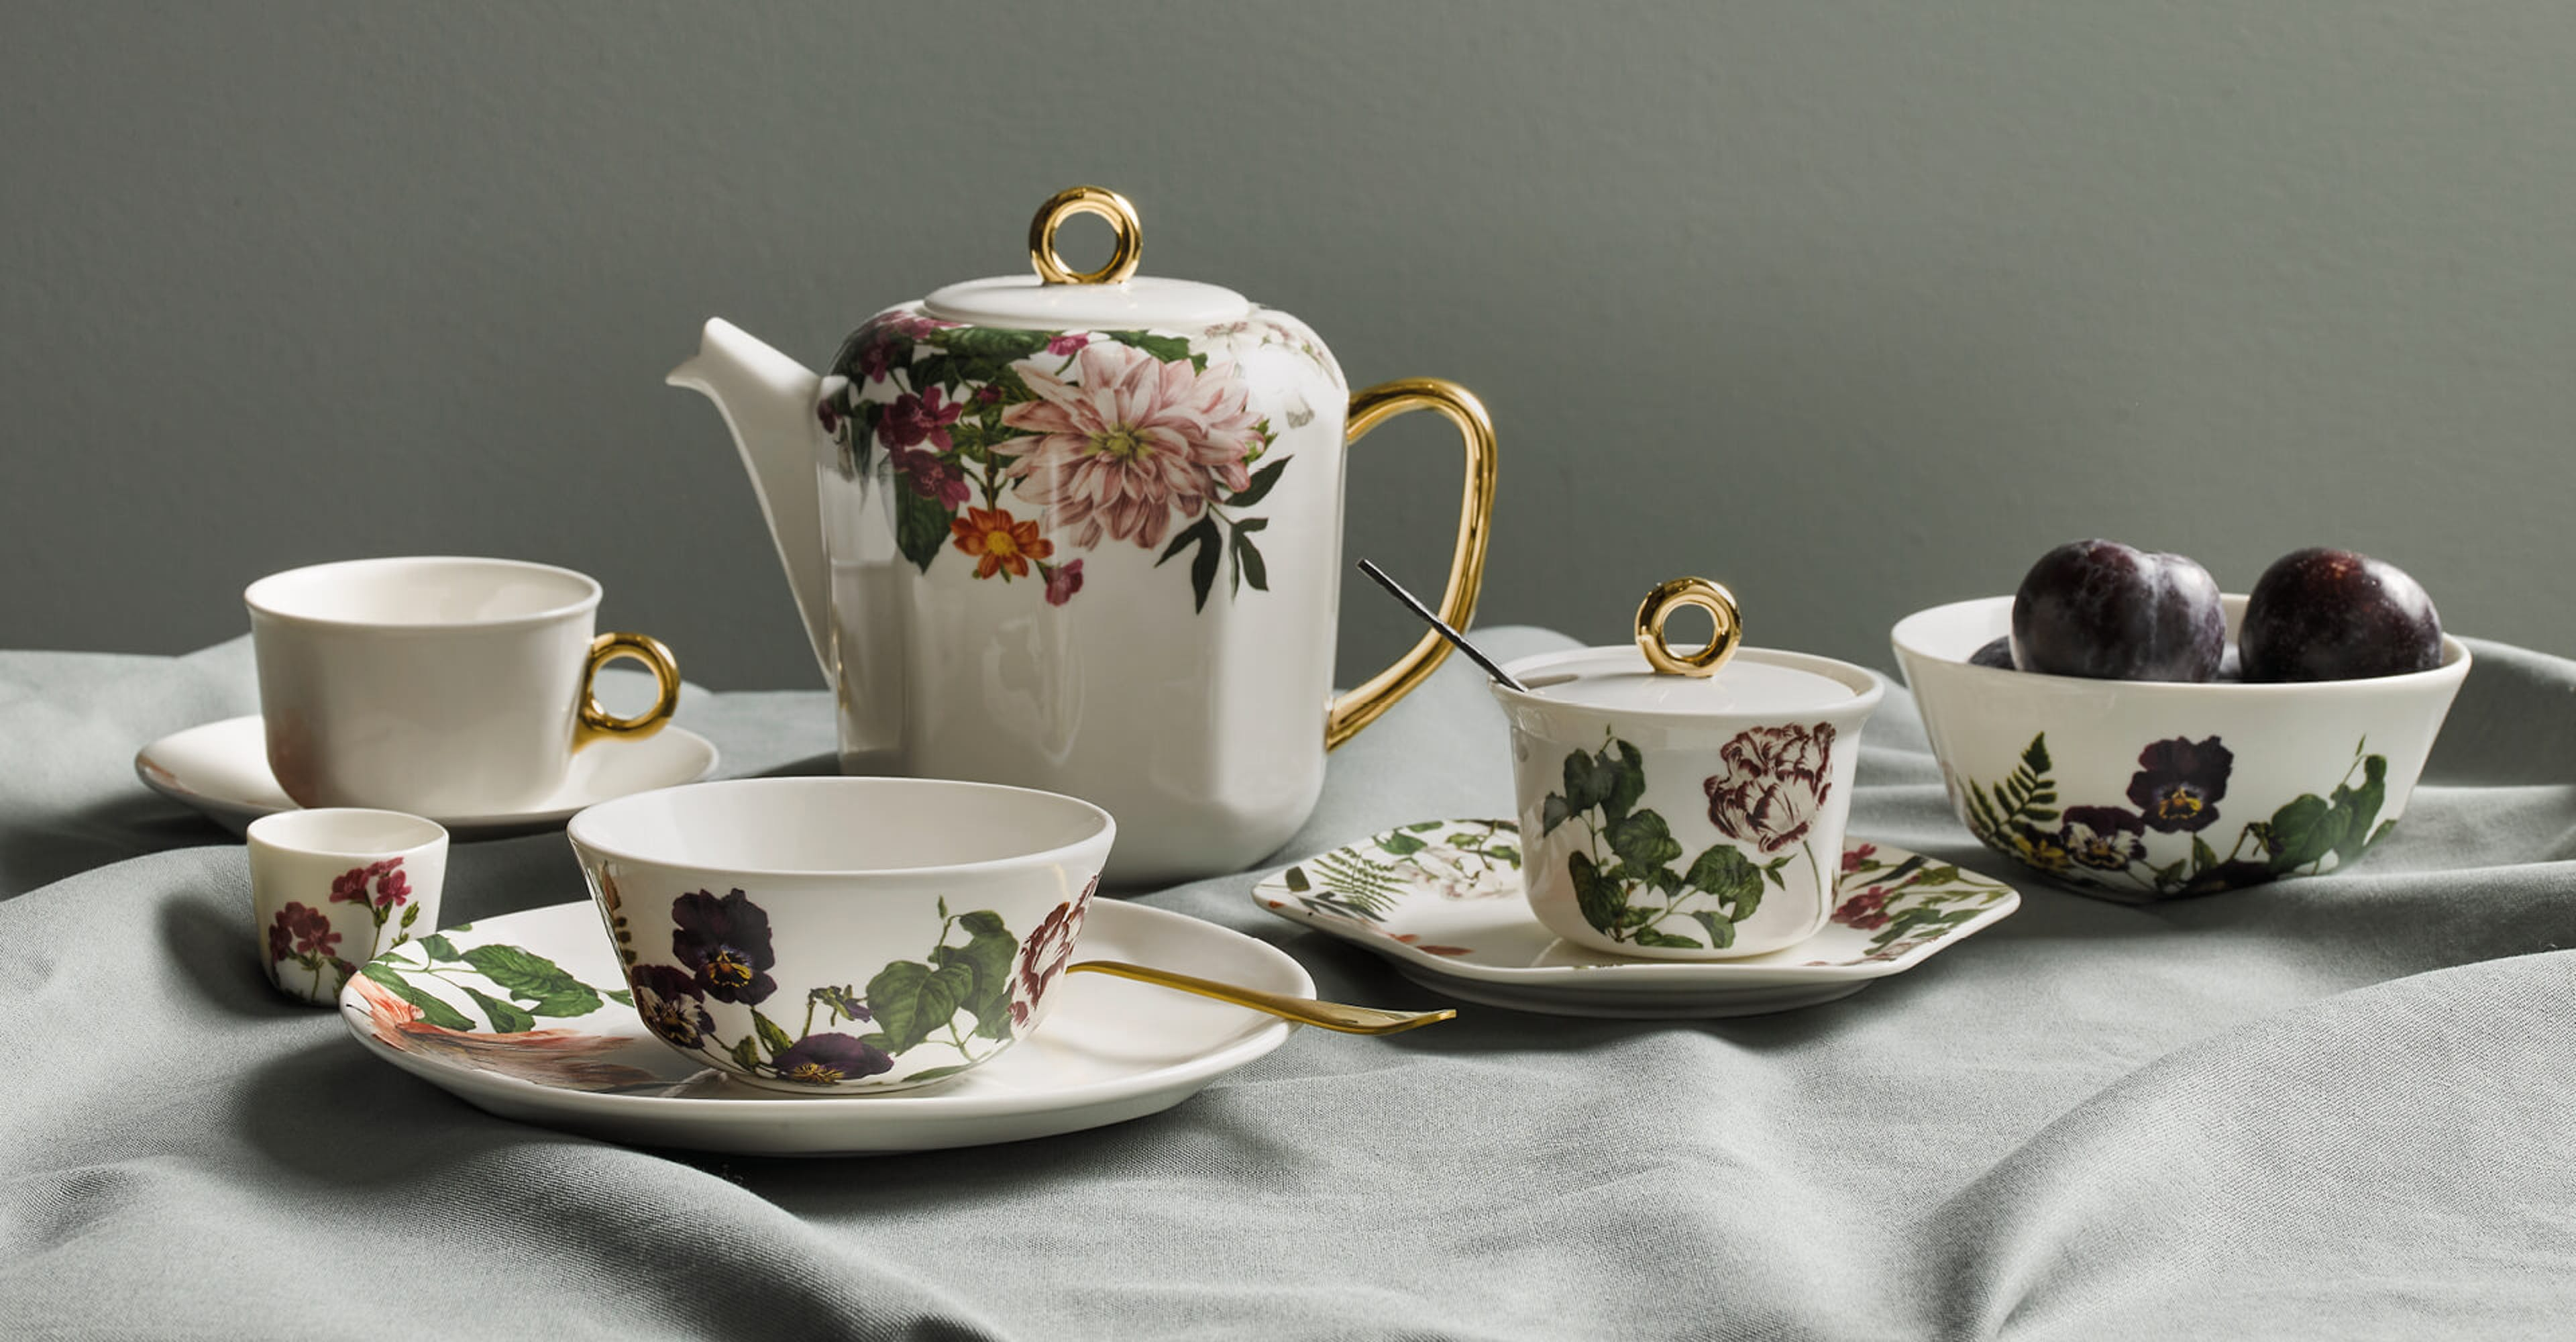 The Porcelain Collection